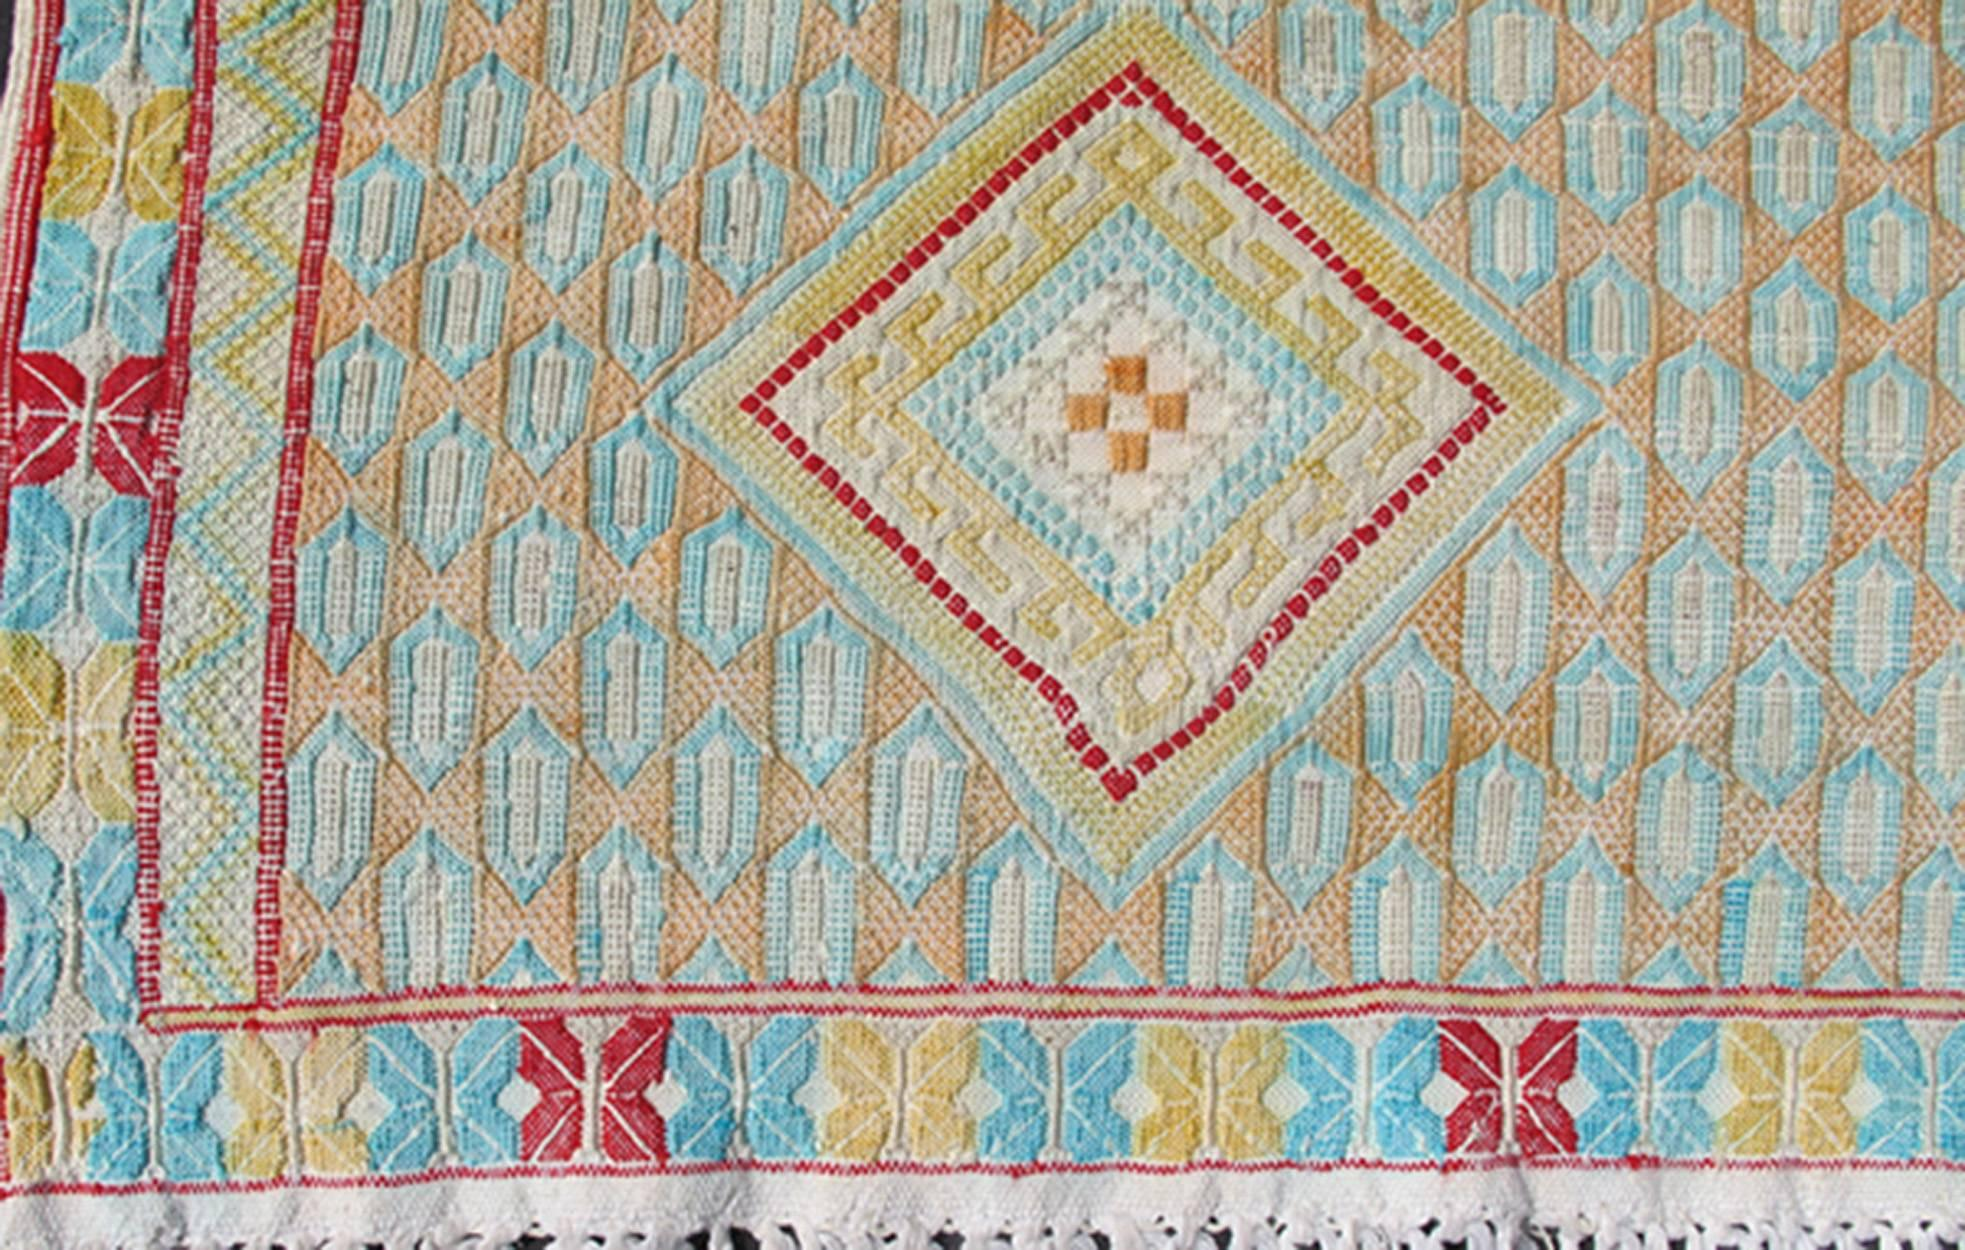 Colorful Vintage Embroidery Moroccan Rug With Diamond